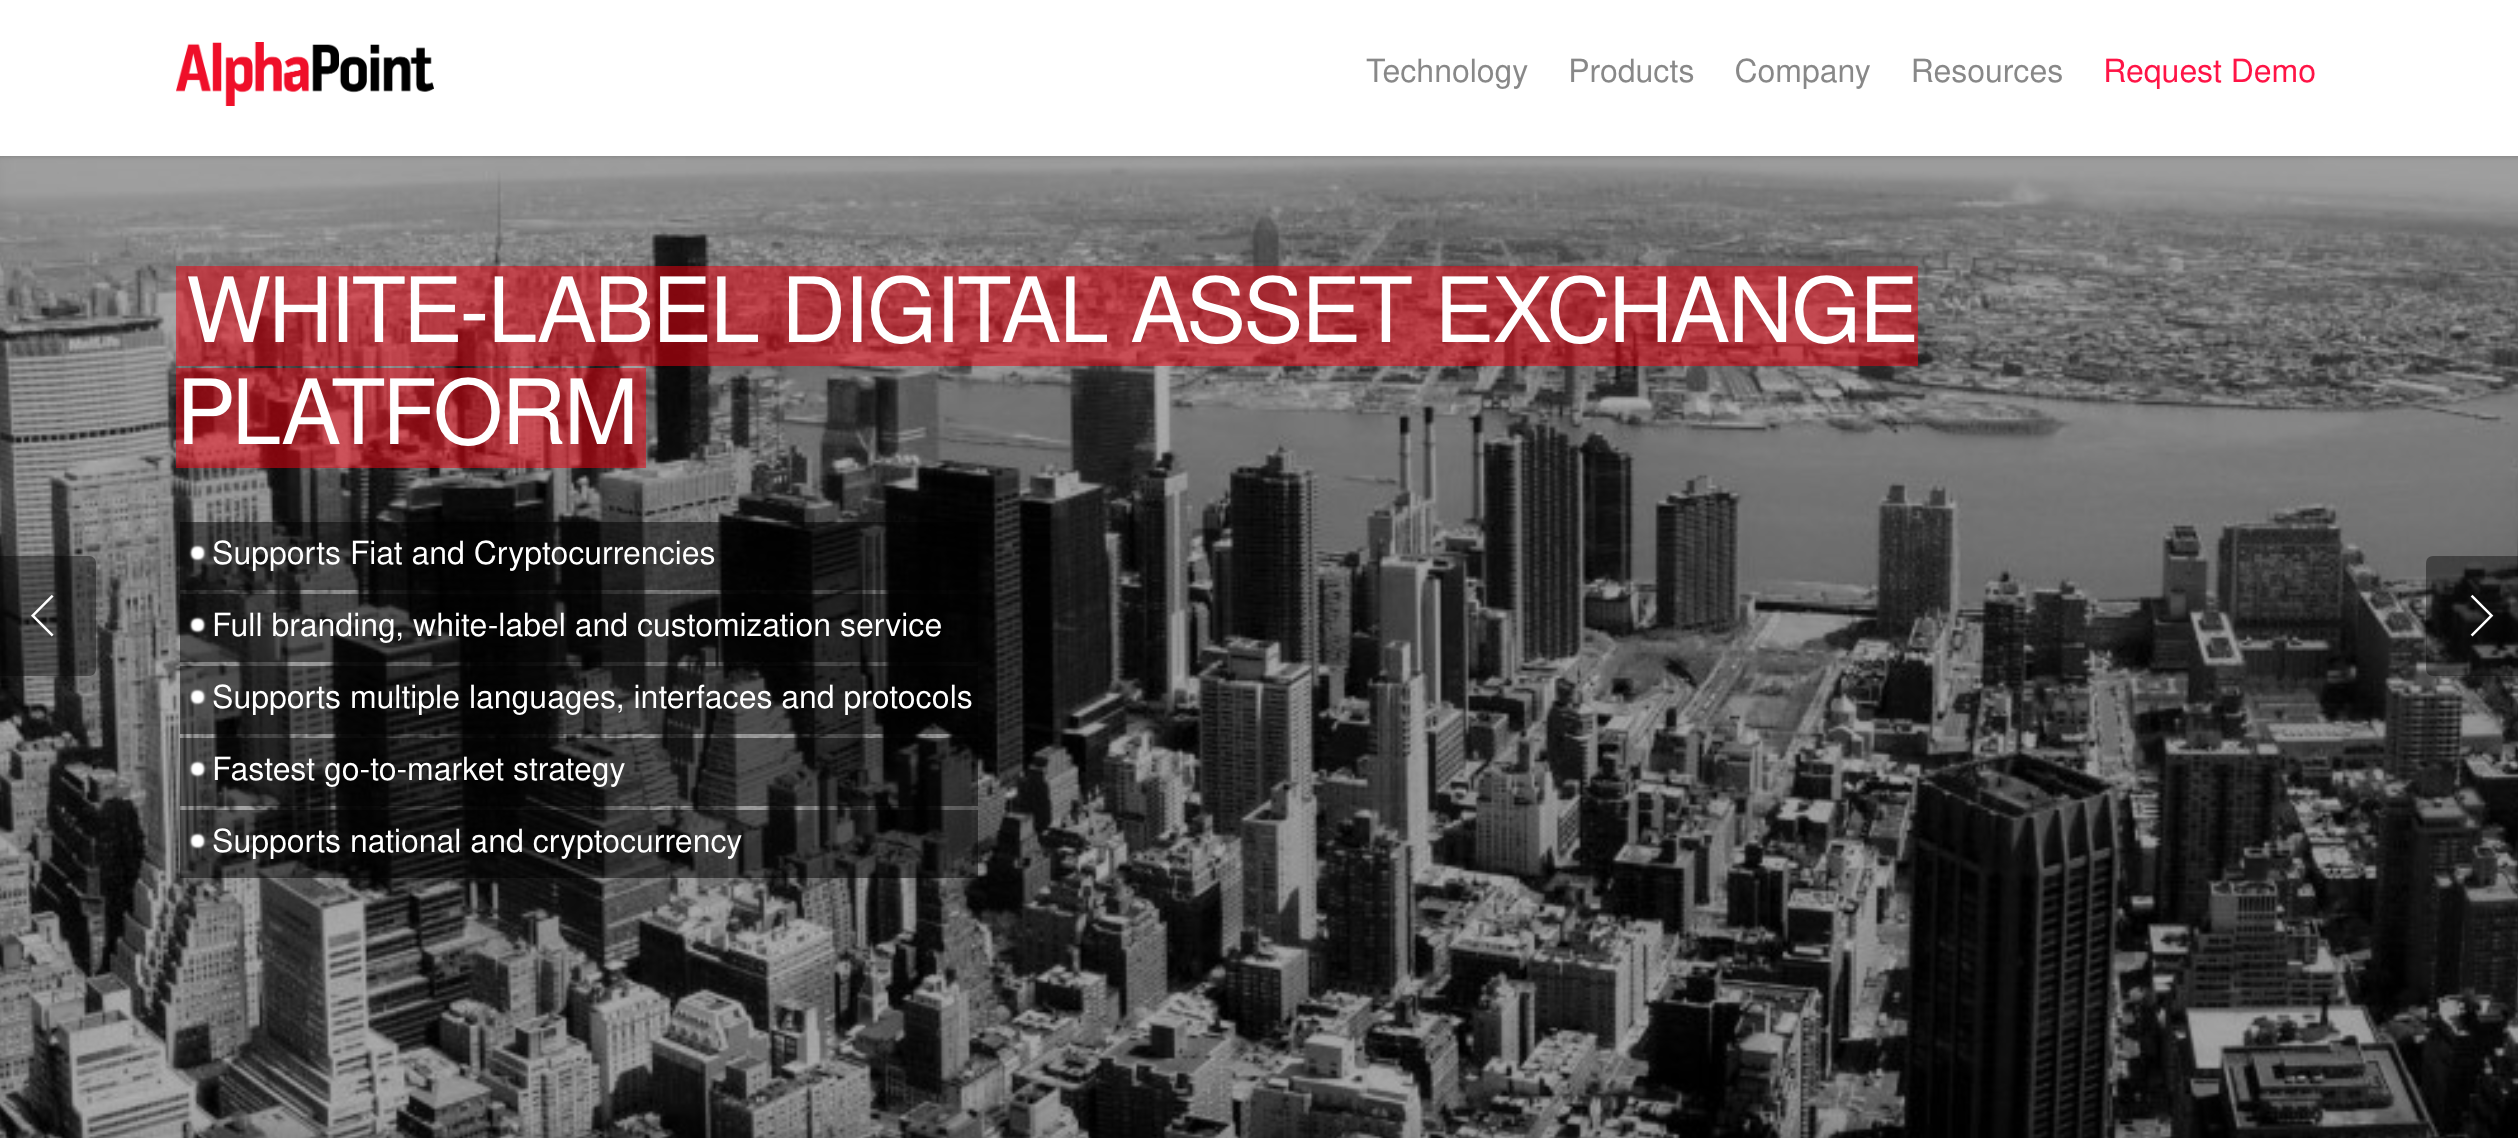 AlphaPoint to Power Asset Management Tools for Laureate Digital Securities